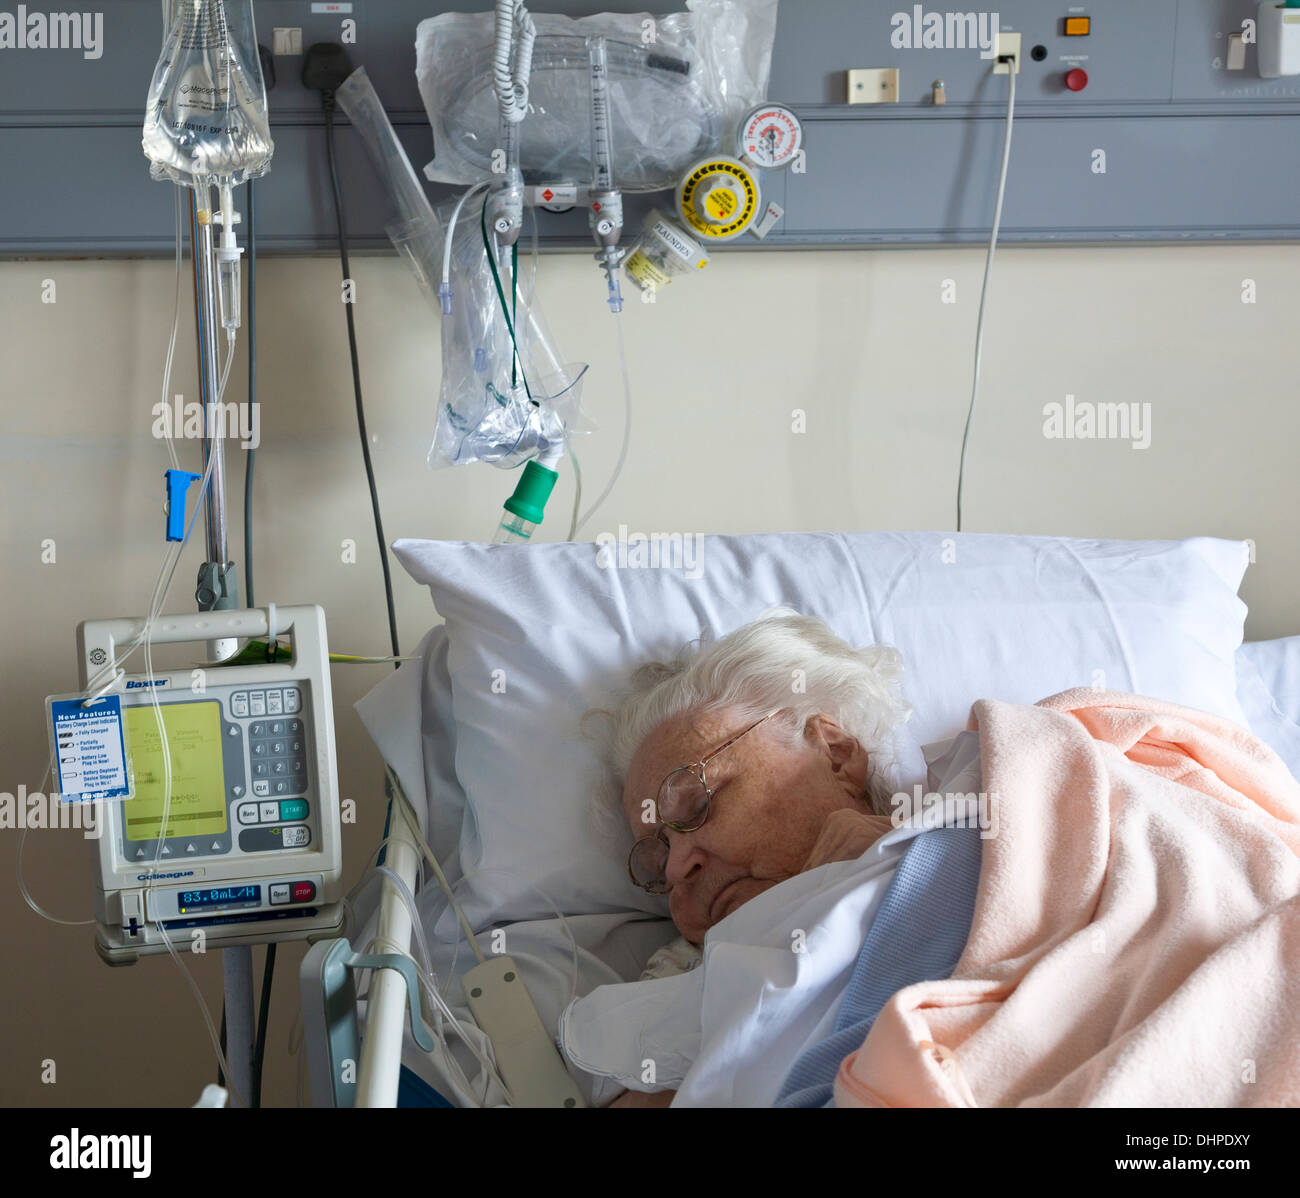 Intensive care bed - Stock Image